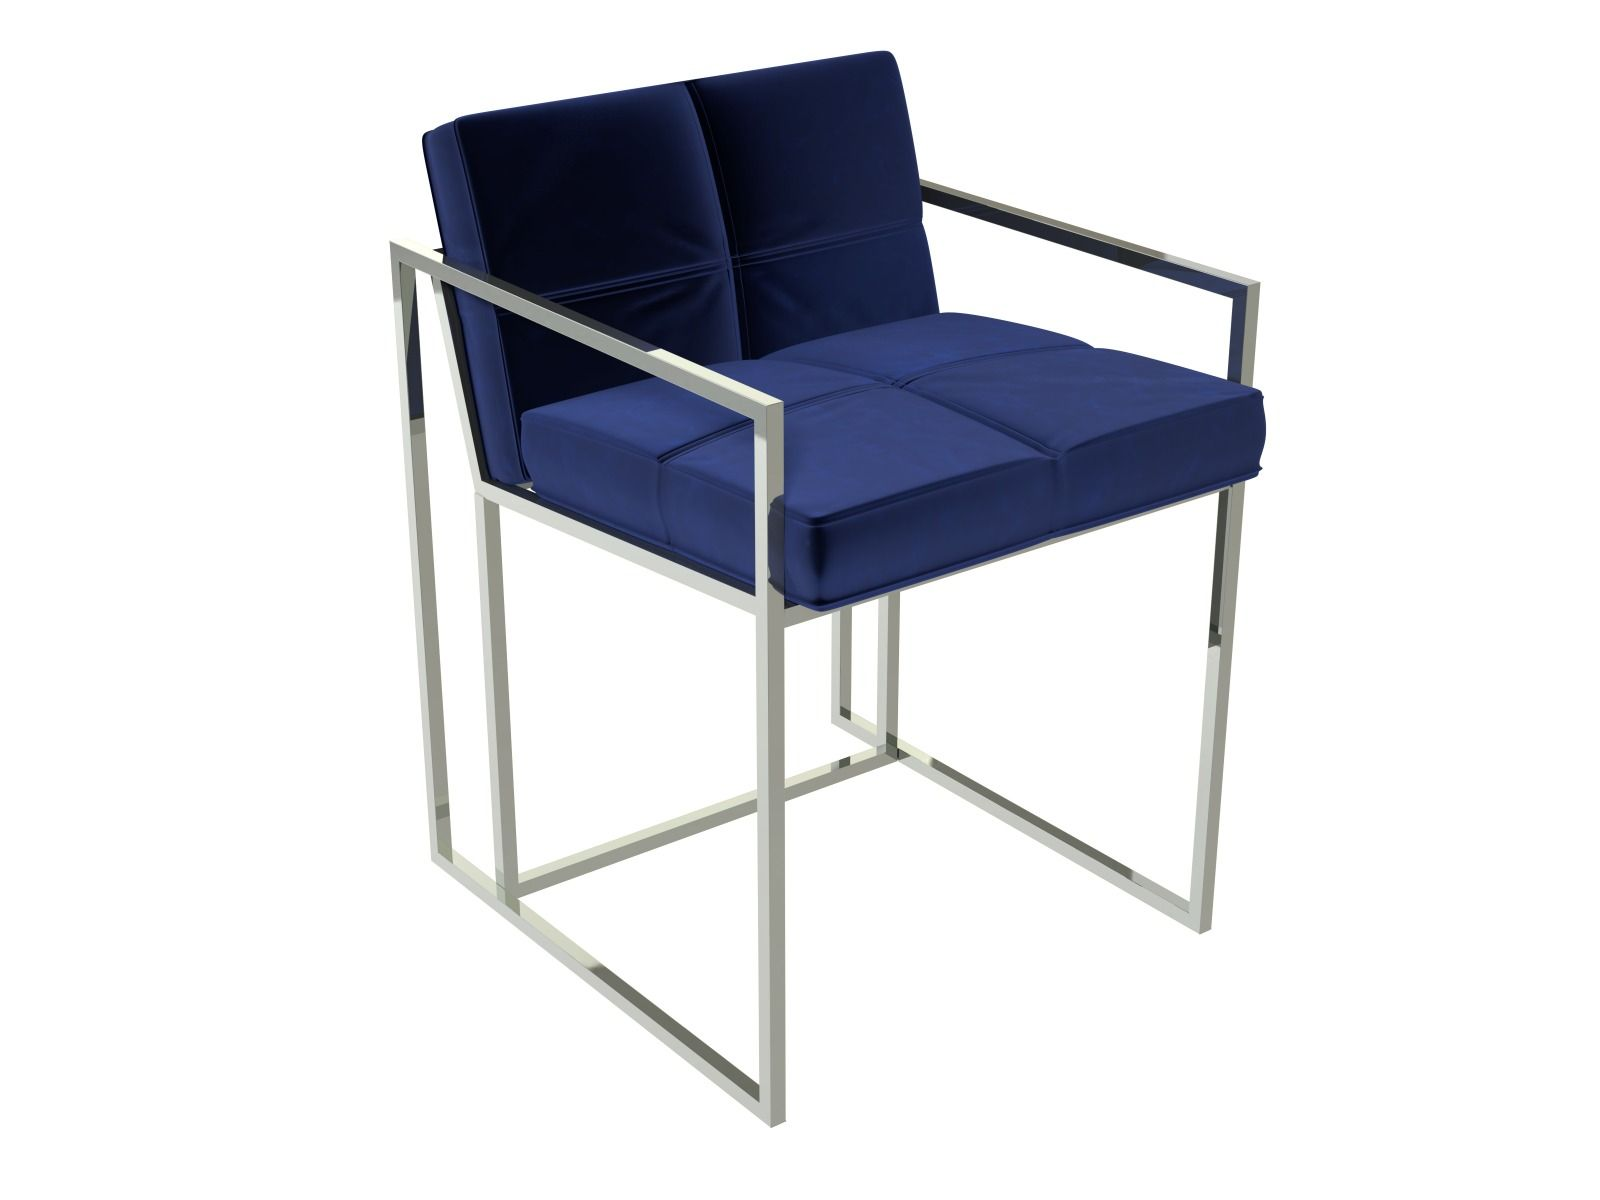 chrome dining chairs uk hanging chair riyadh estevan with midnight blue velvet